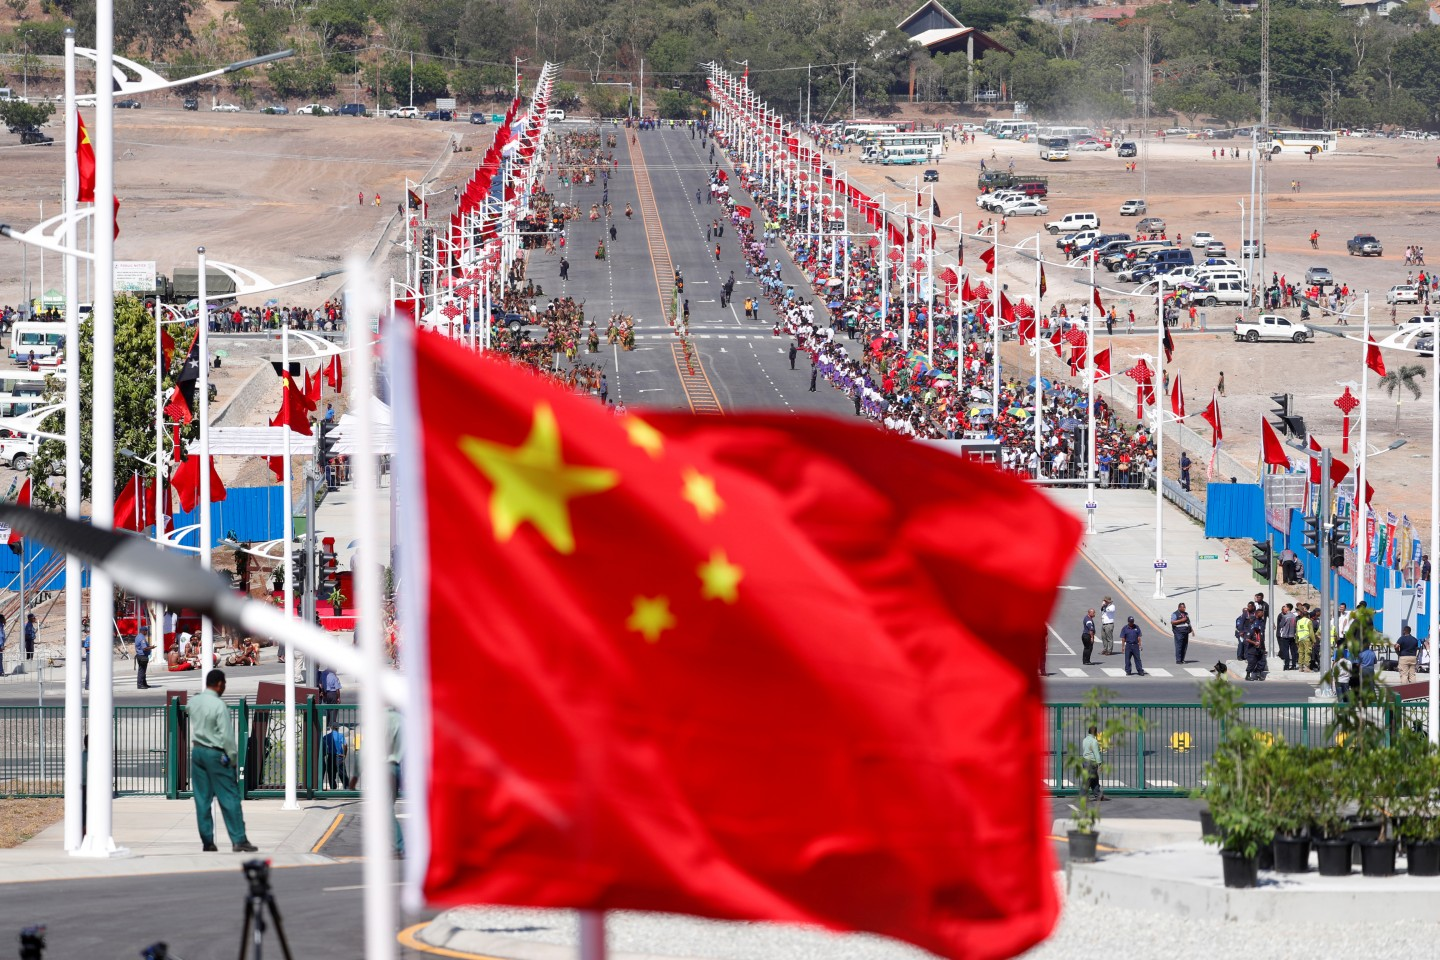 China is having difficulties in translating its growing hard power into soft power. (David Gray/Reuters)